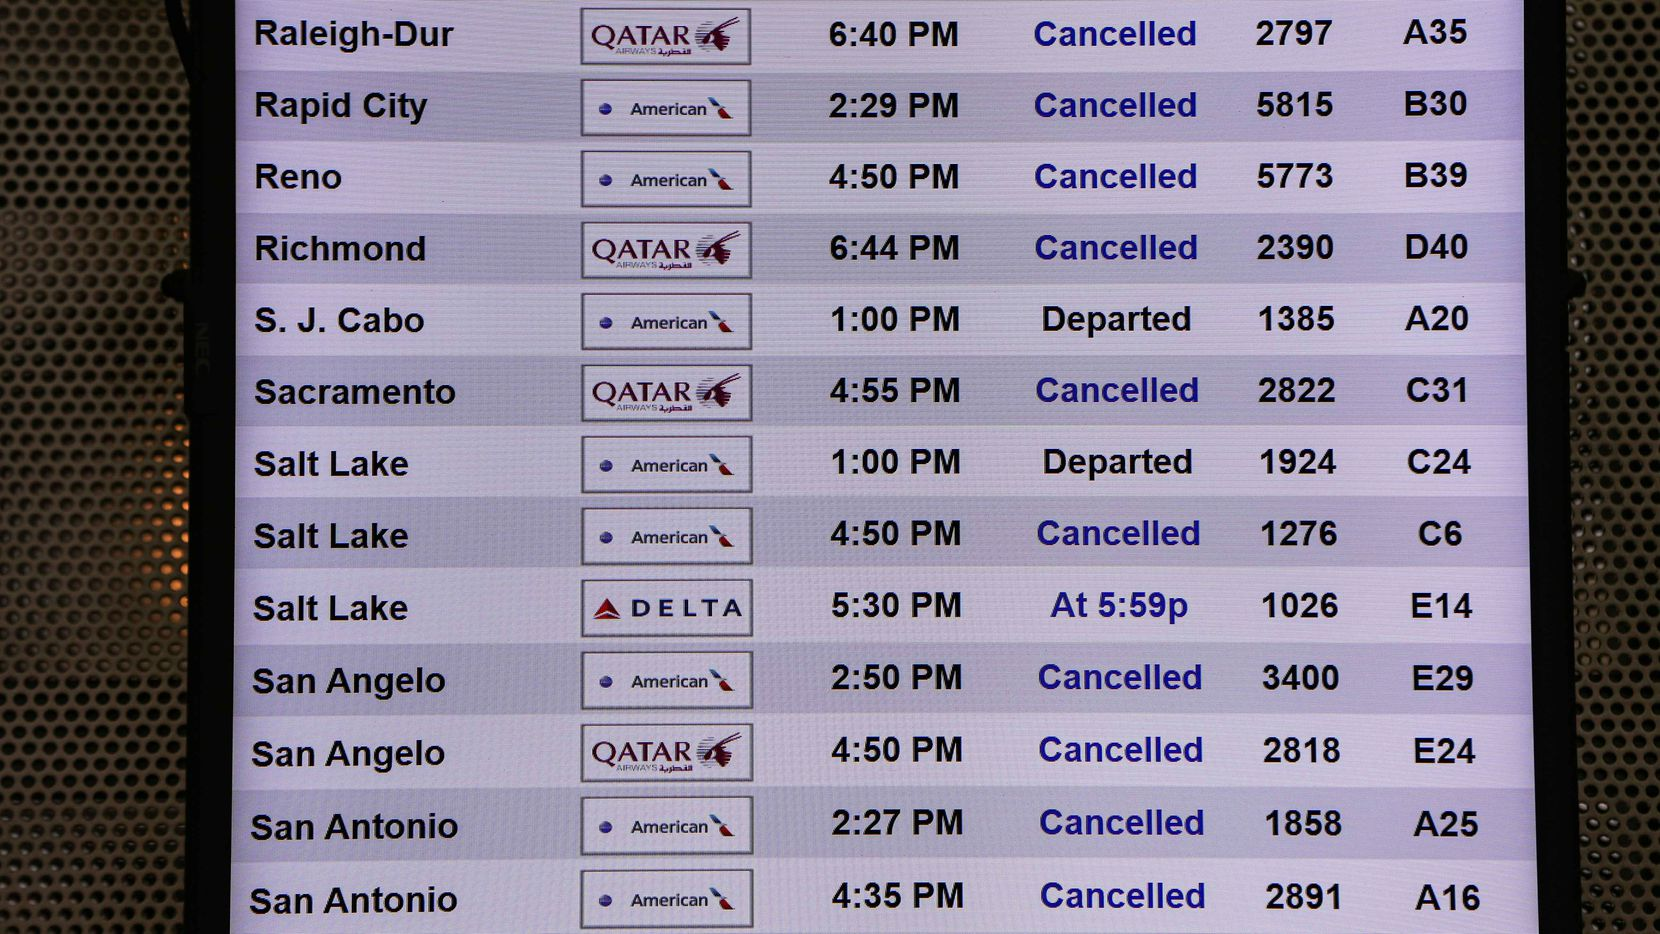 Several airlines at DFW International Airport cancel, delayed hundreds of flights as snow, ice descended over Dallas metro area on Sunday, February 14, 2021. (Lola Gomez/The Dallas Morning News)